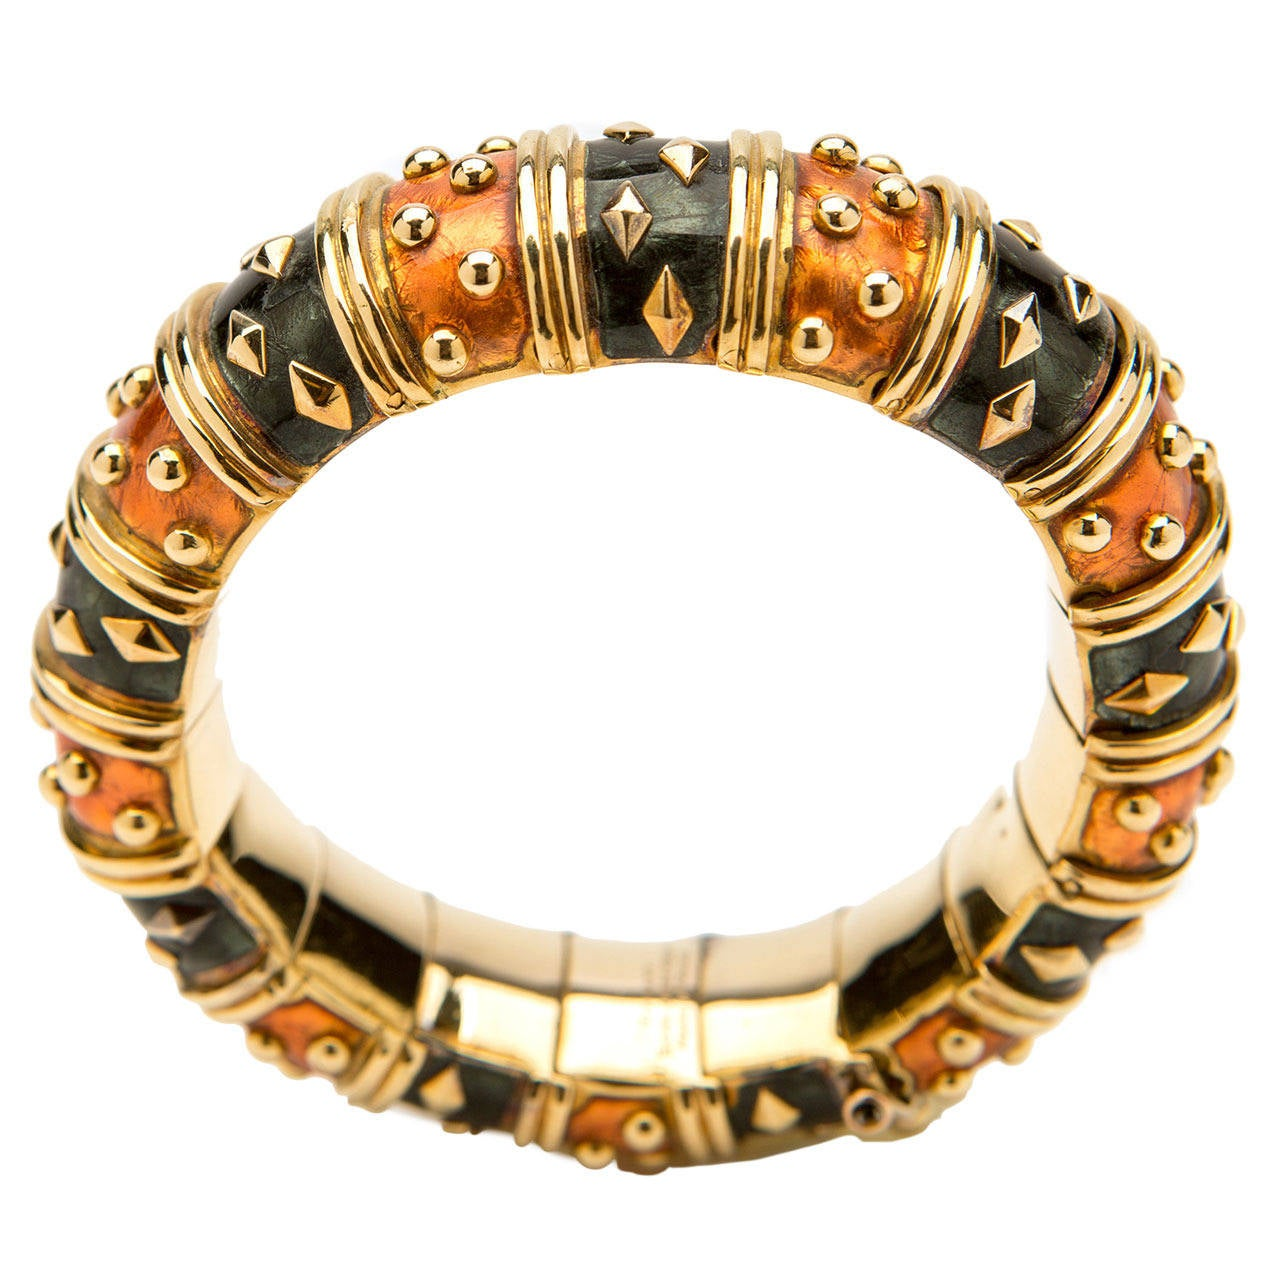 j and co jewelry and co schlumberger enamel gold bracelet for sale 9315